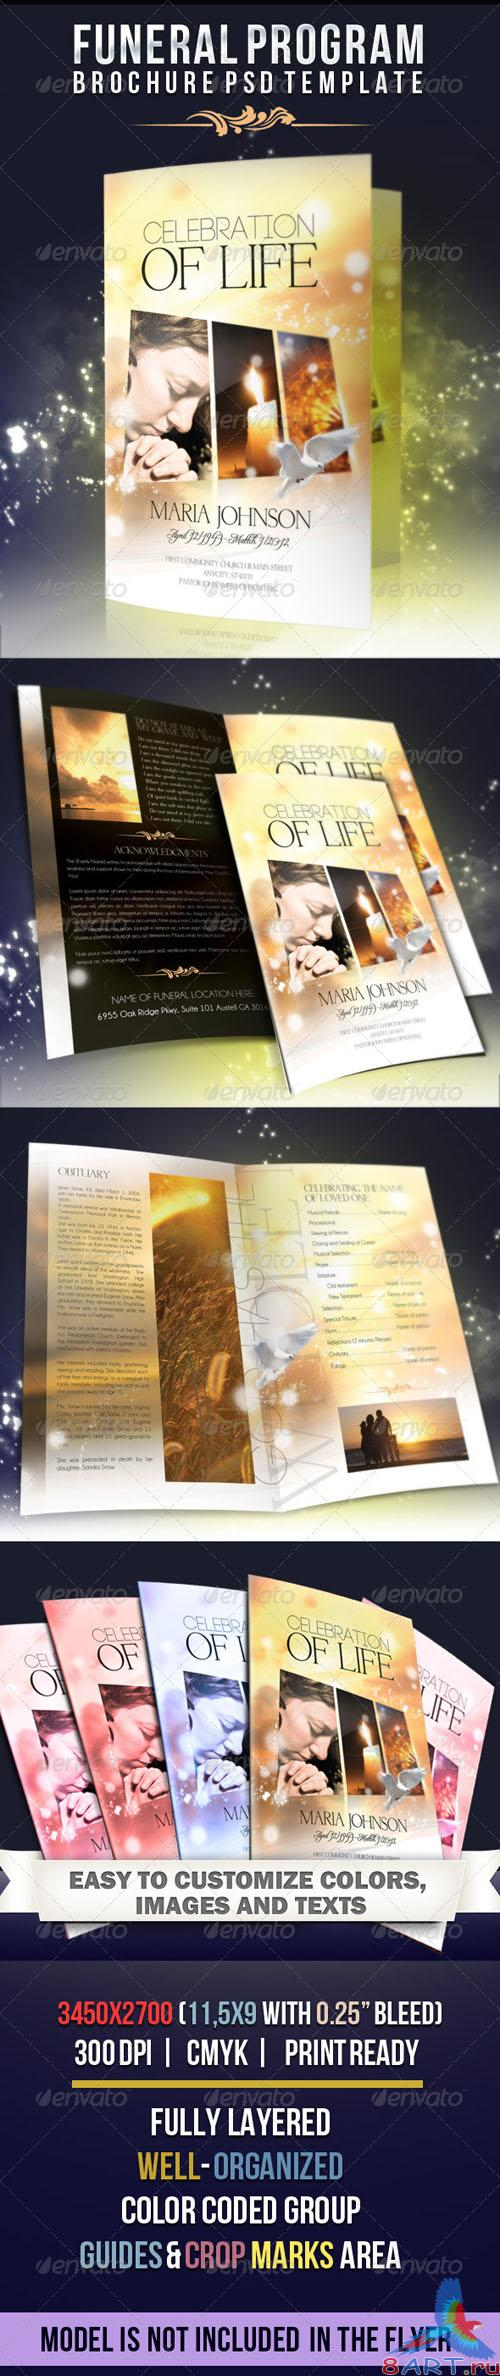 GraphicRiver - Celebration of life - Funeral Program Brochure Template 2549525